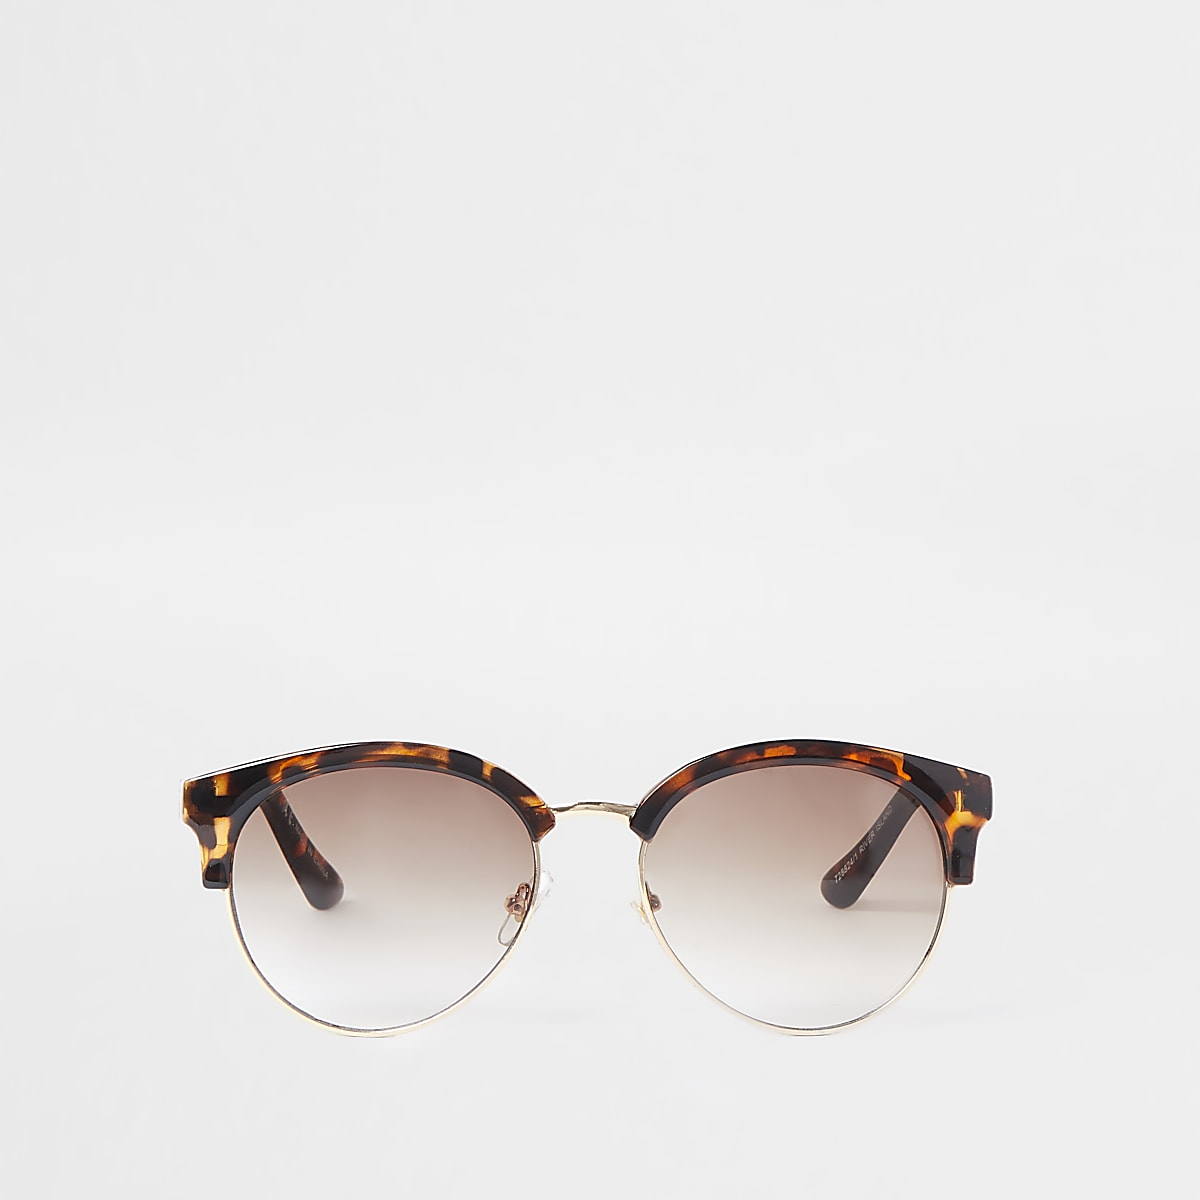 9a44dd09b5b6 Brown tortoiseshell chain trim sunglasses - Retro Sunglasses - Sunglasses -  women